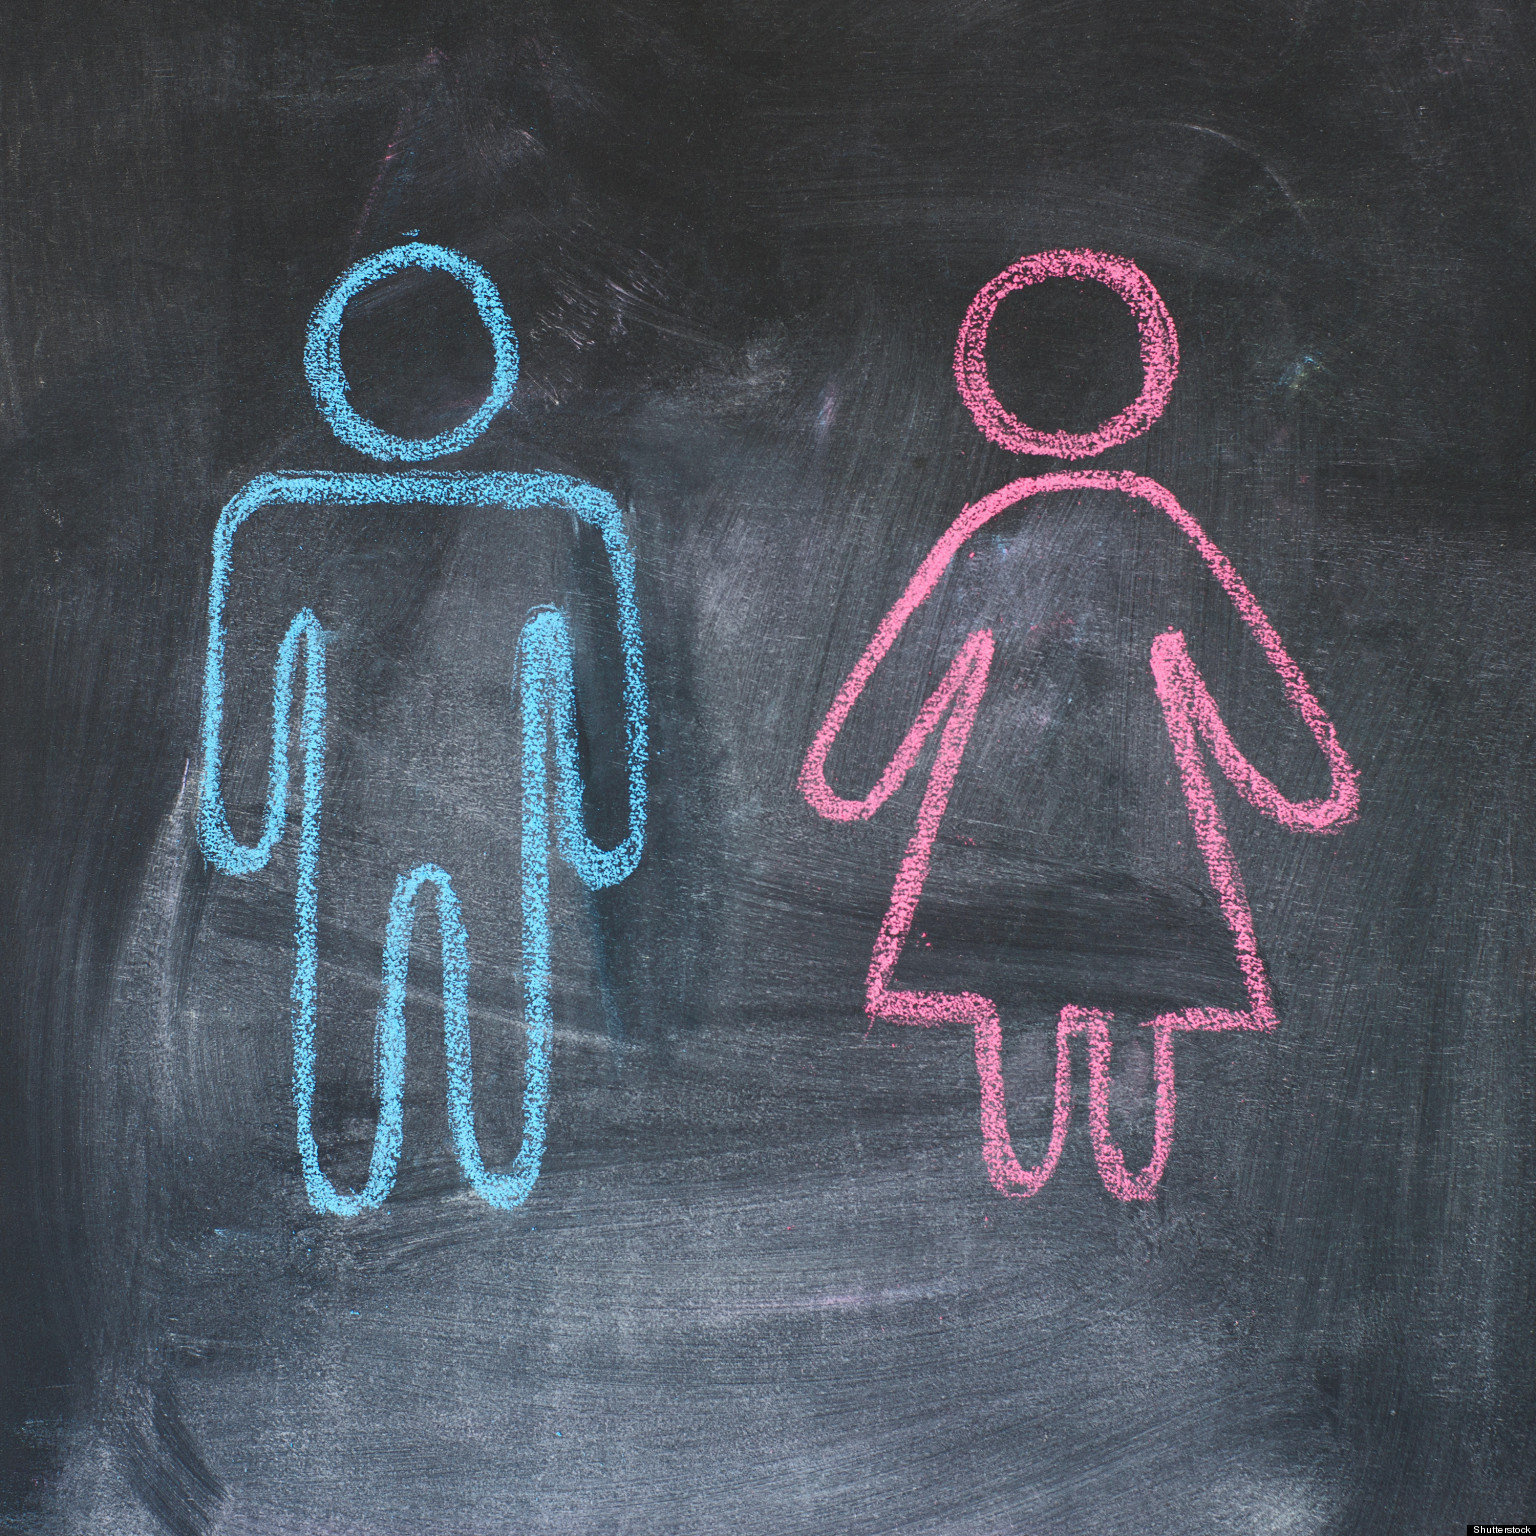 Essay of the week: Mars to Venus – is there really no difference between male and female brains?